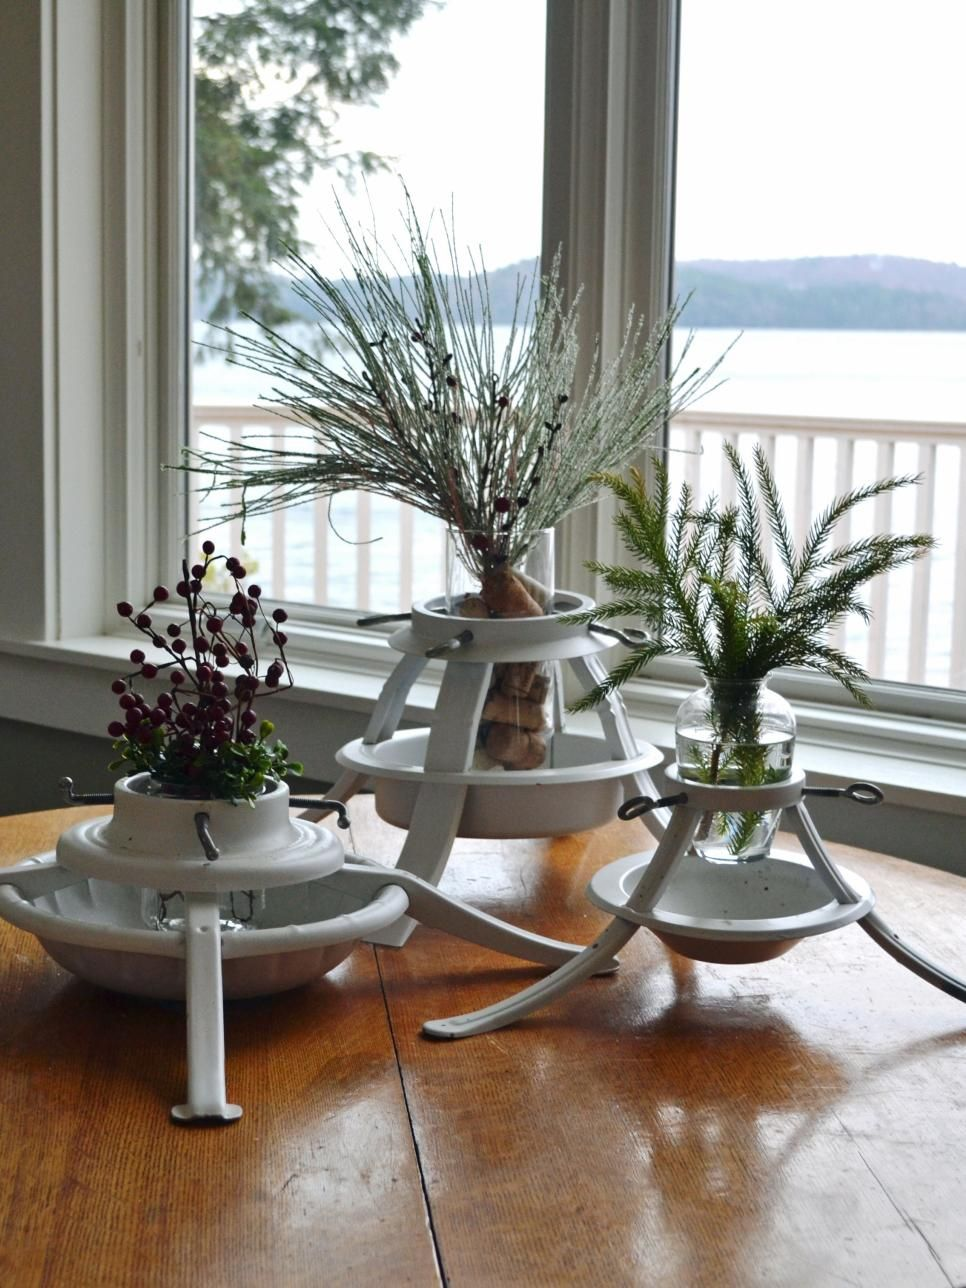 Repurpose old Christmas tree stands into vases >> http